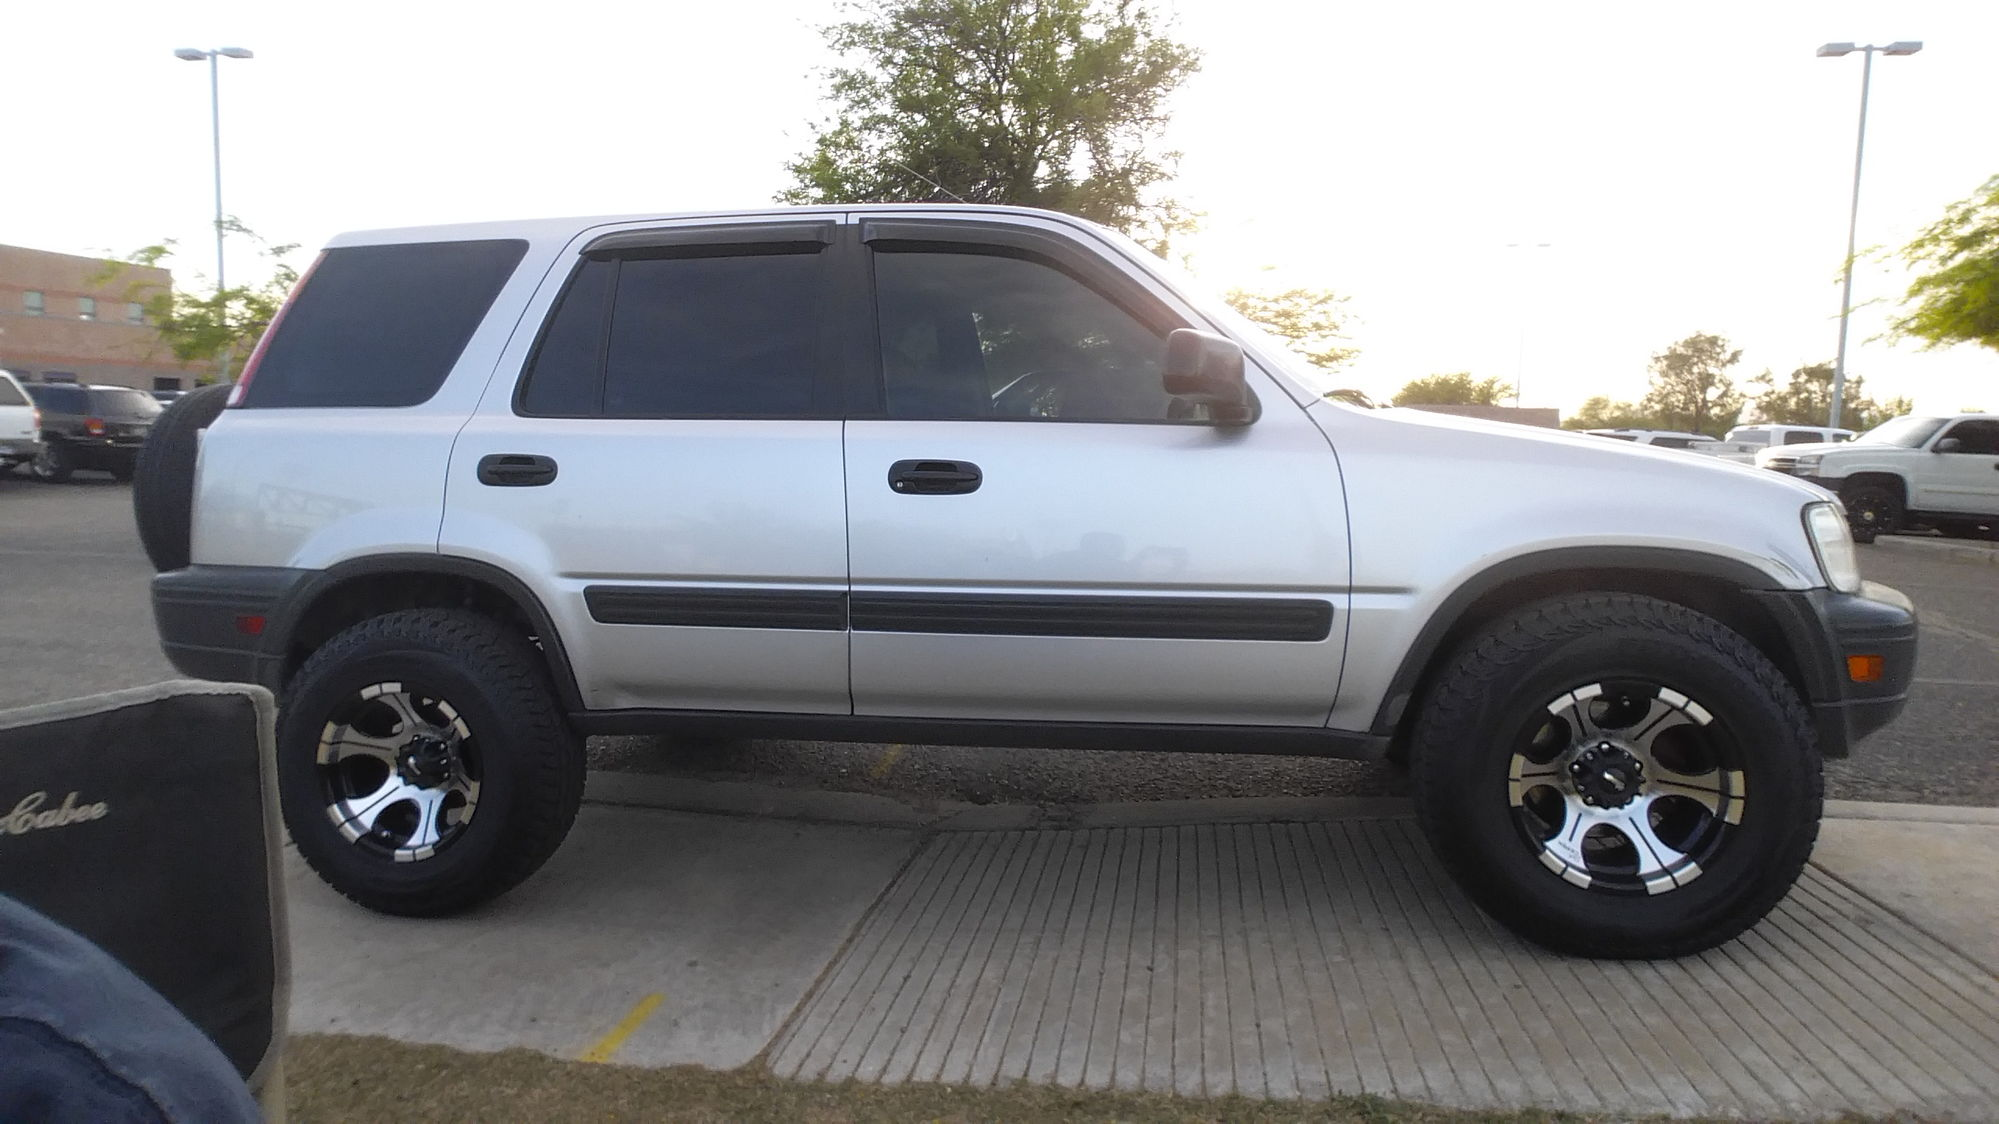 ficial H T OFFROAD LIFTED CR V thread Page 69